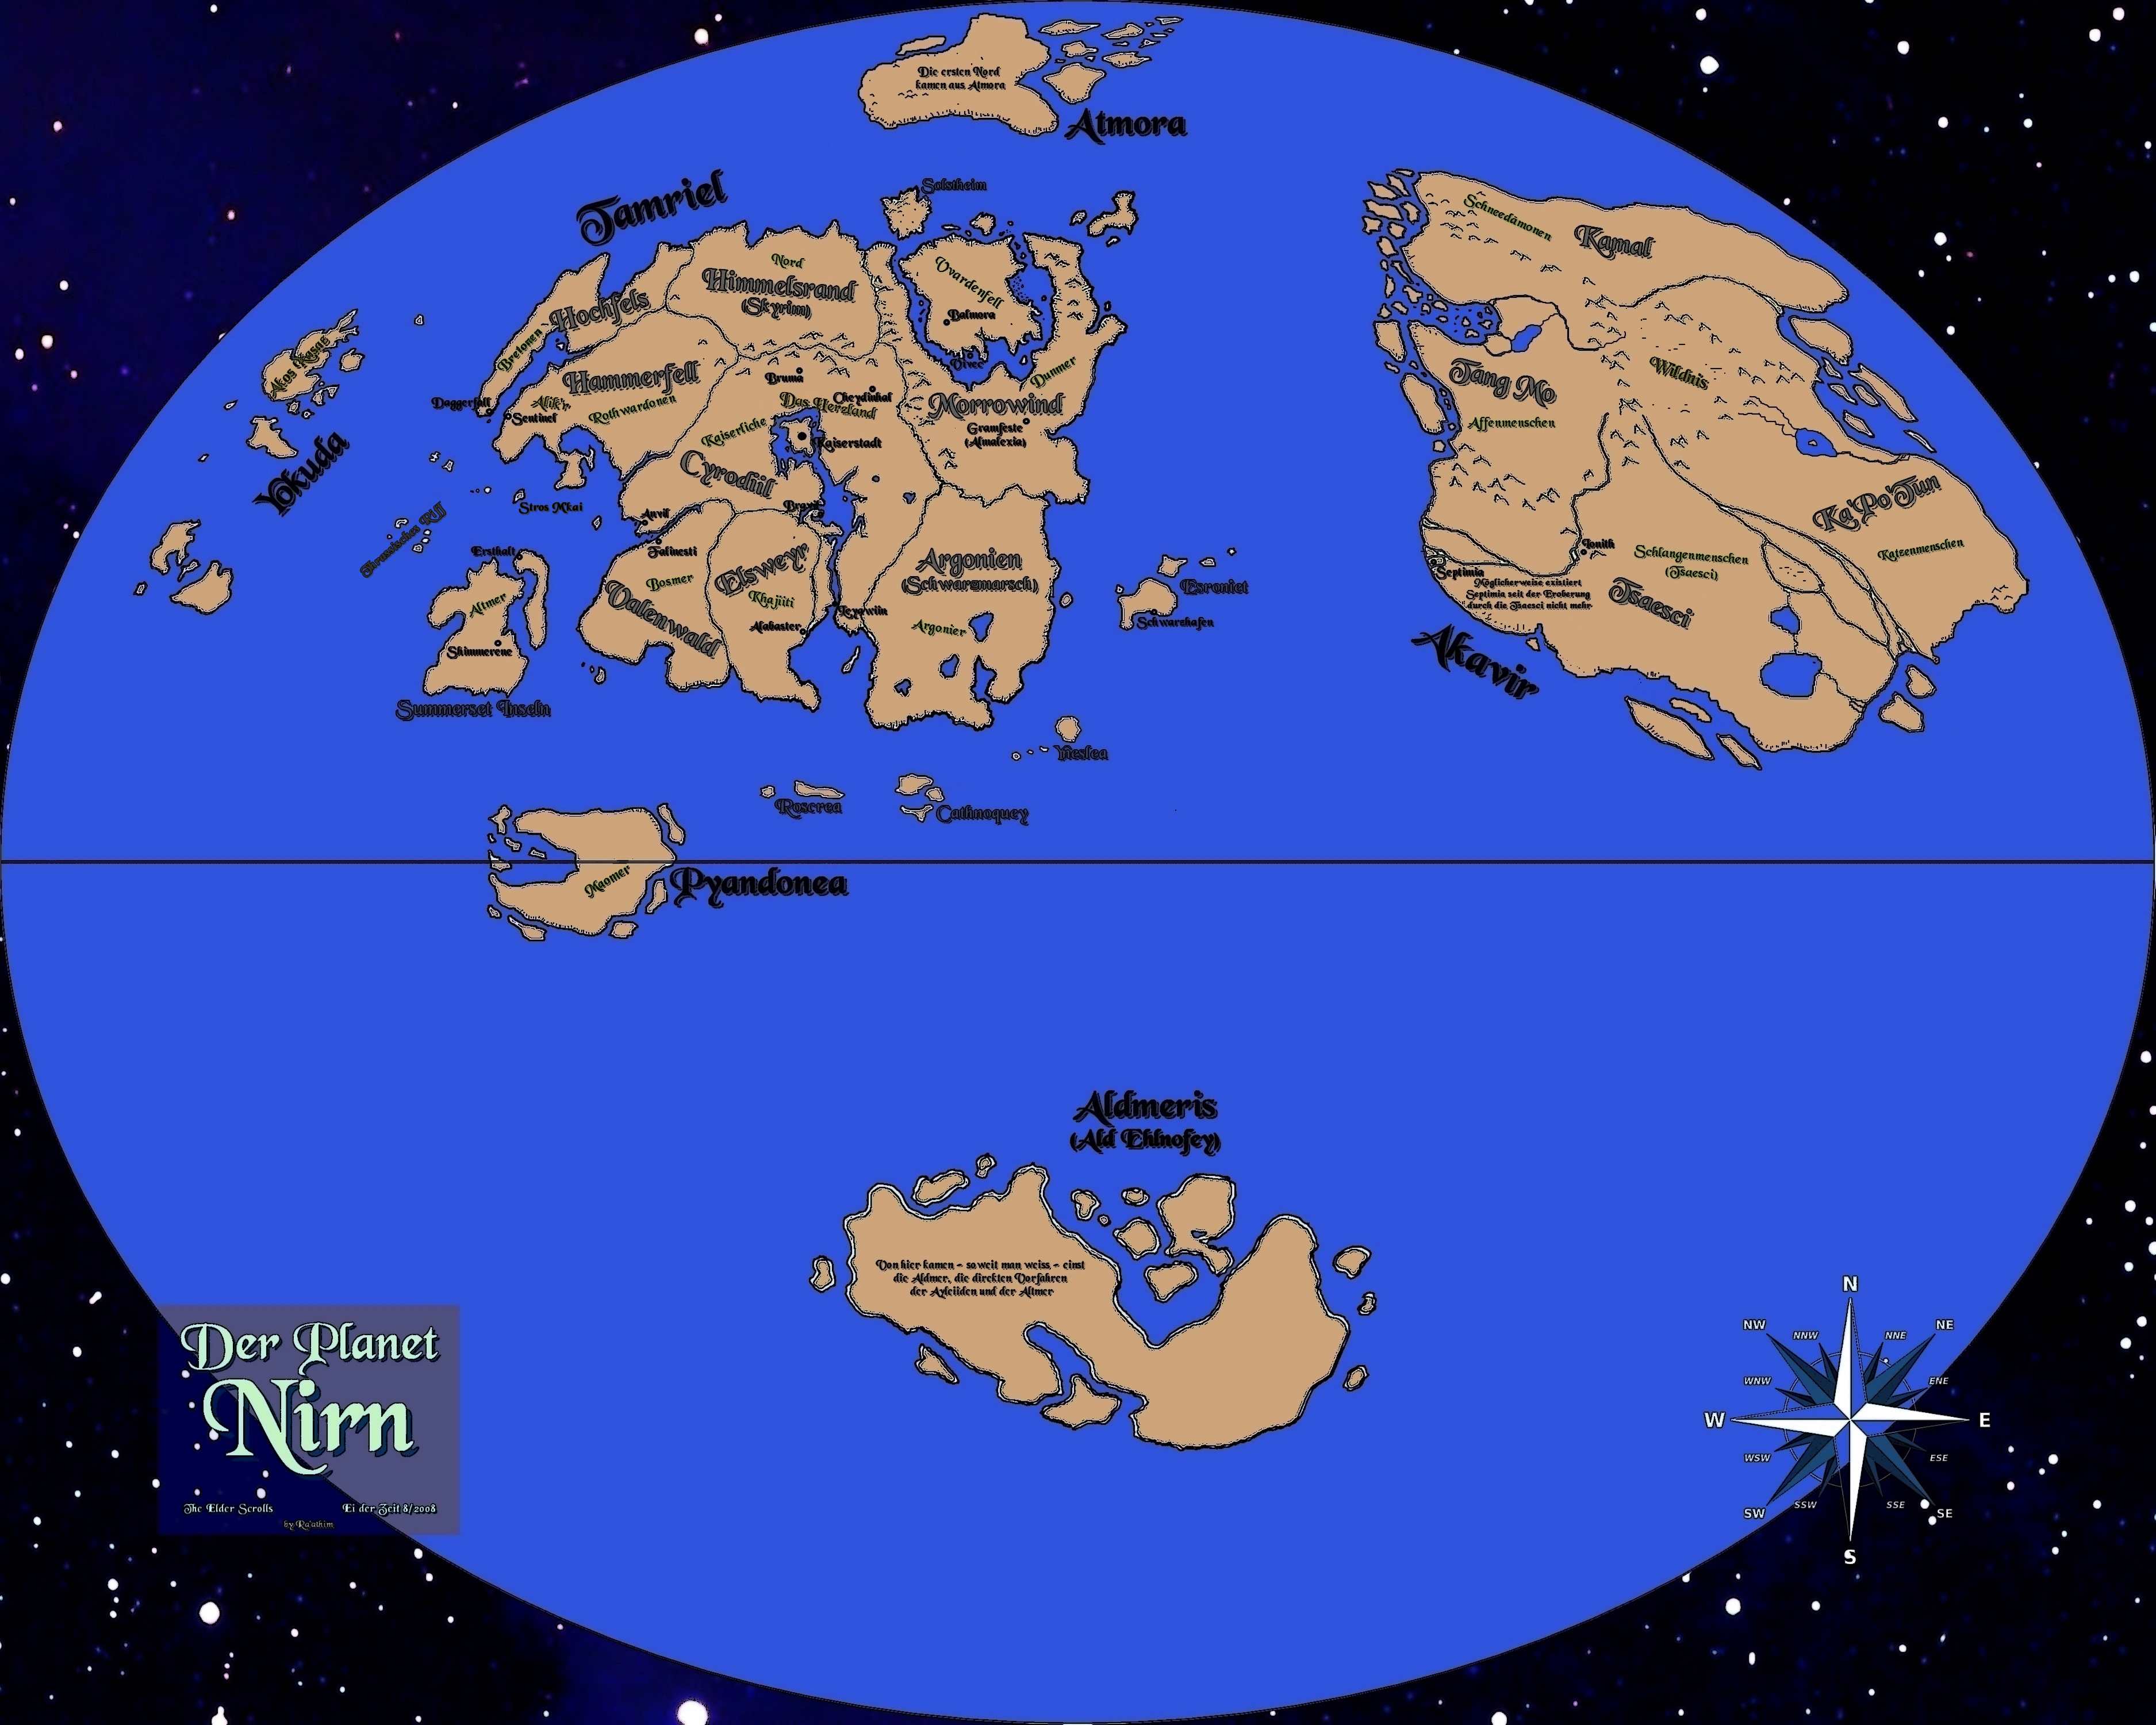 Which fan made map depiction of Akavir do you think is the most